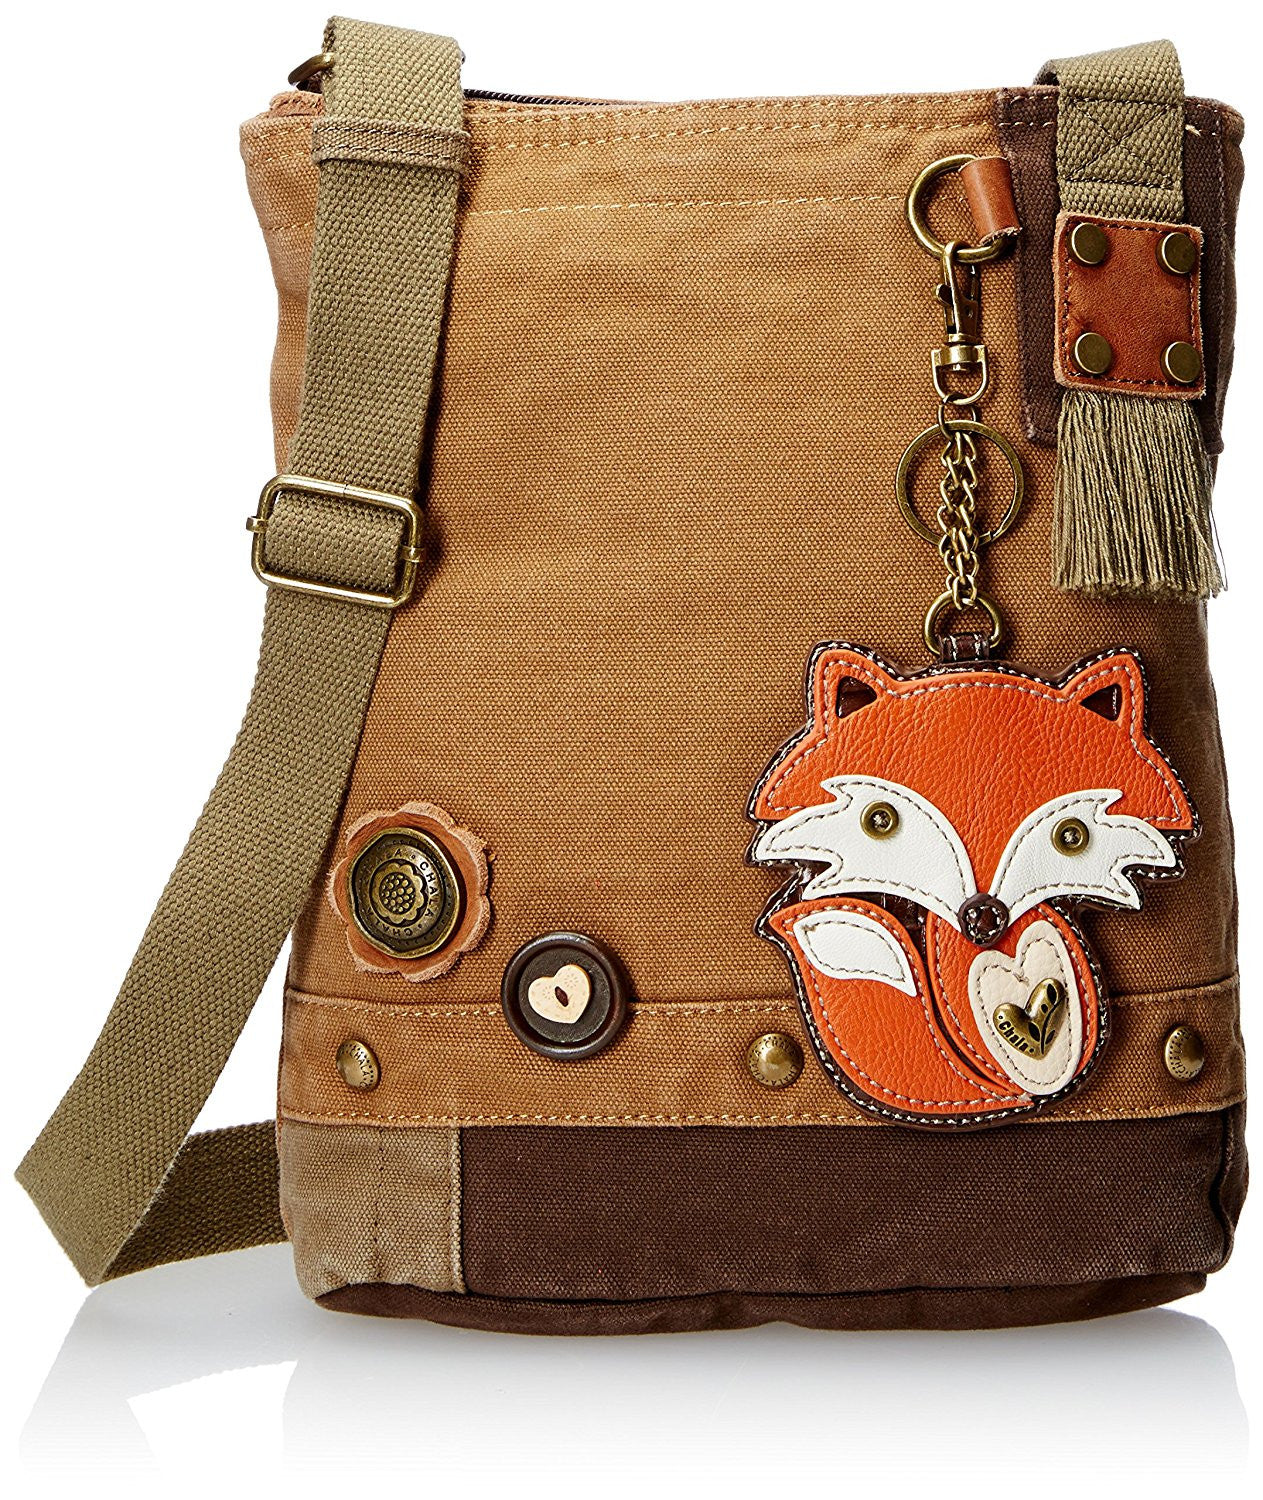 Chala Handbag Canvas Crossbody Messenger Bags - FOX